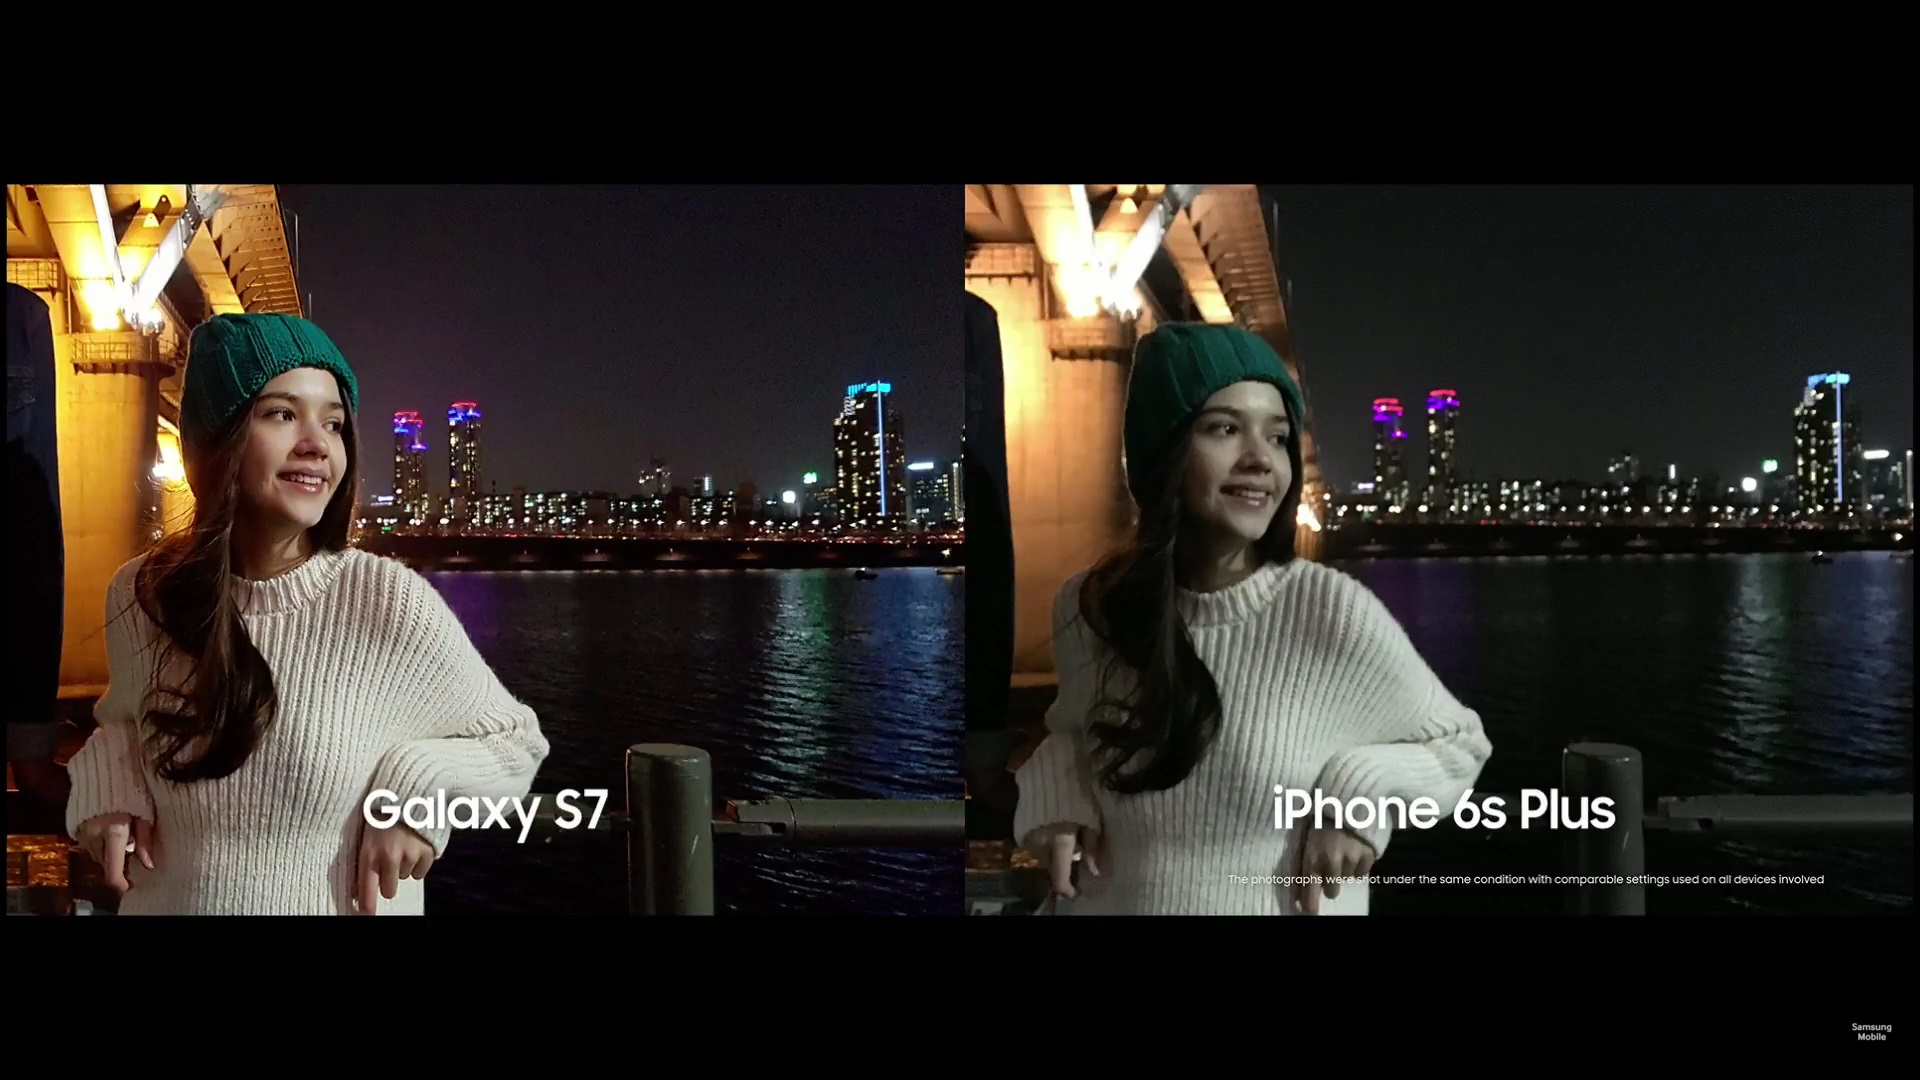 Samsung S7 vs iPhone 6s Plus